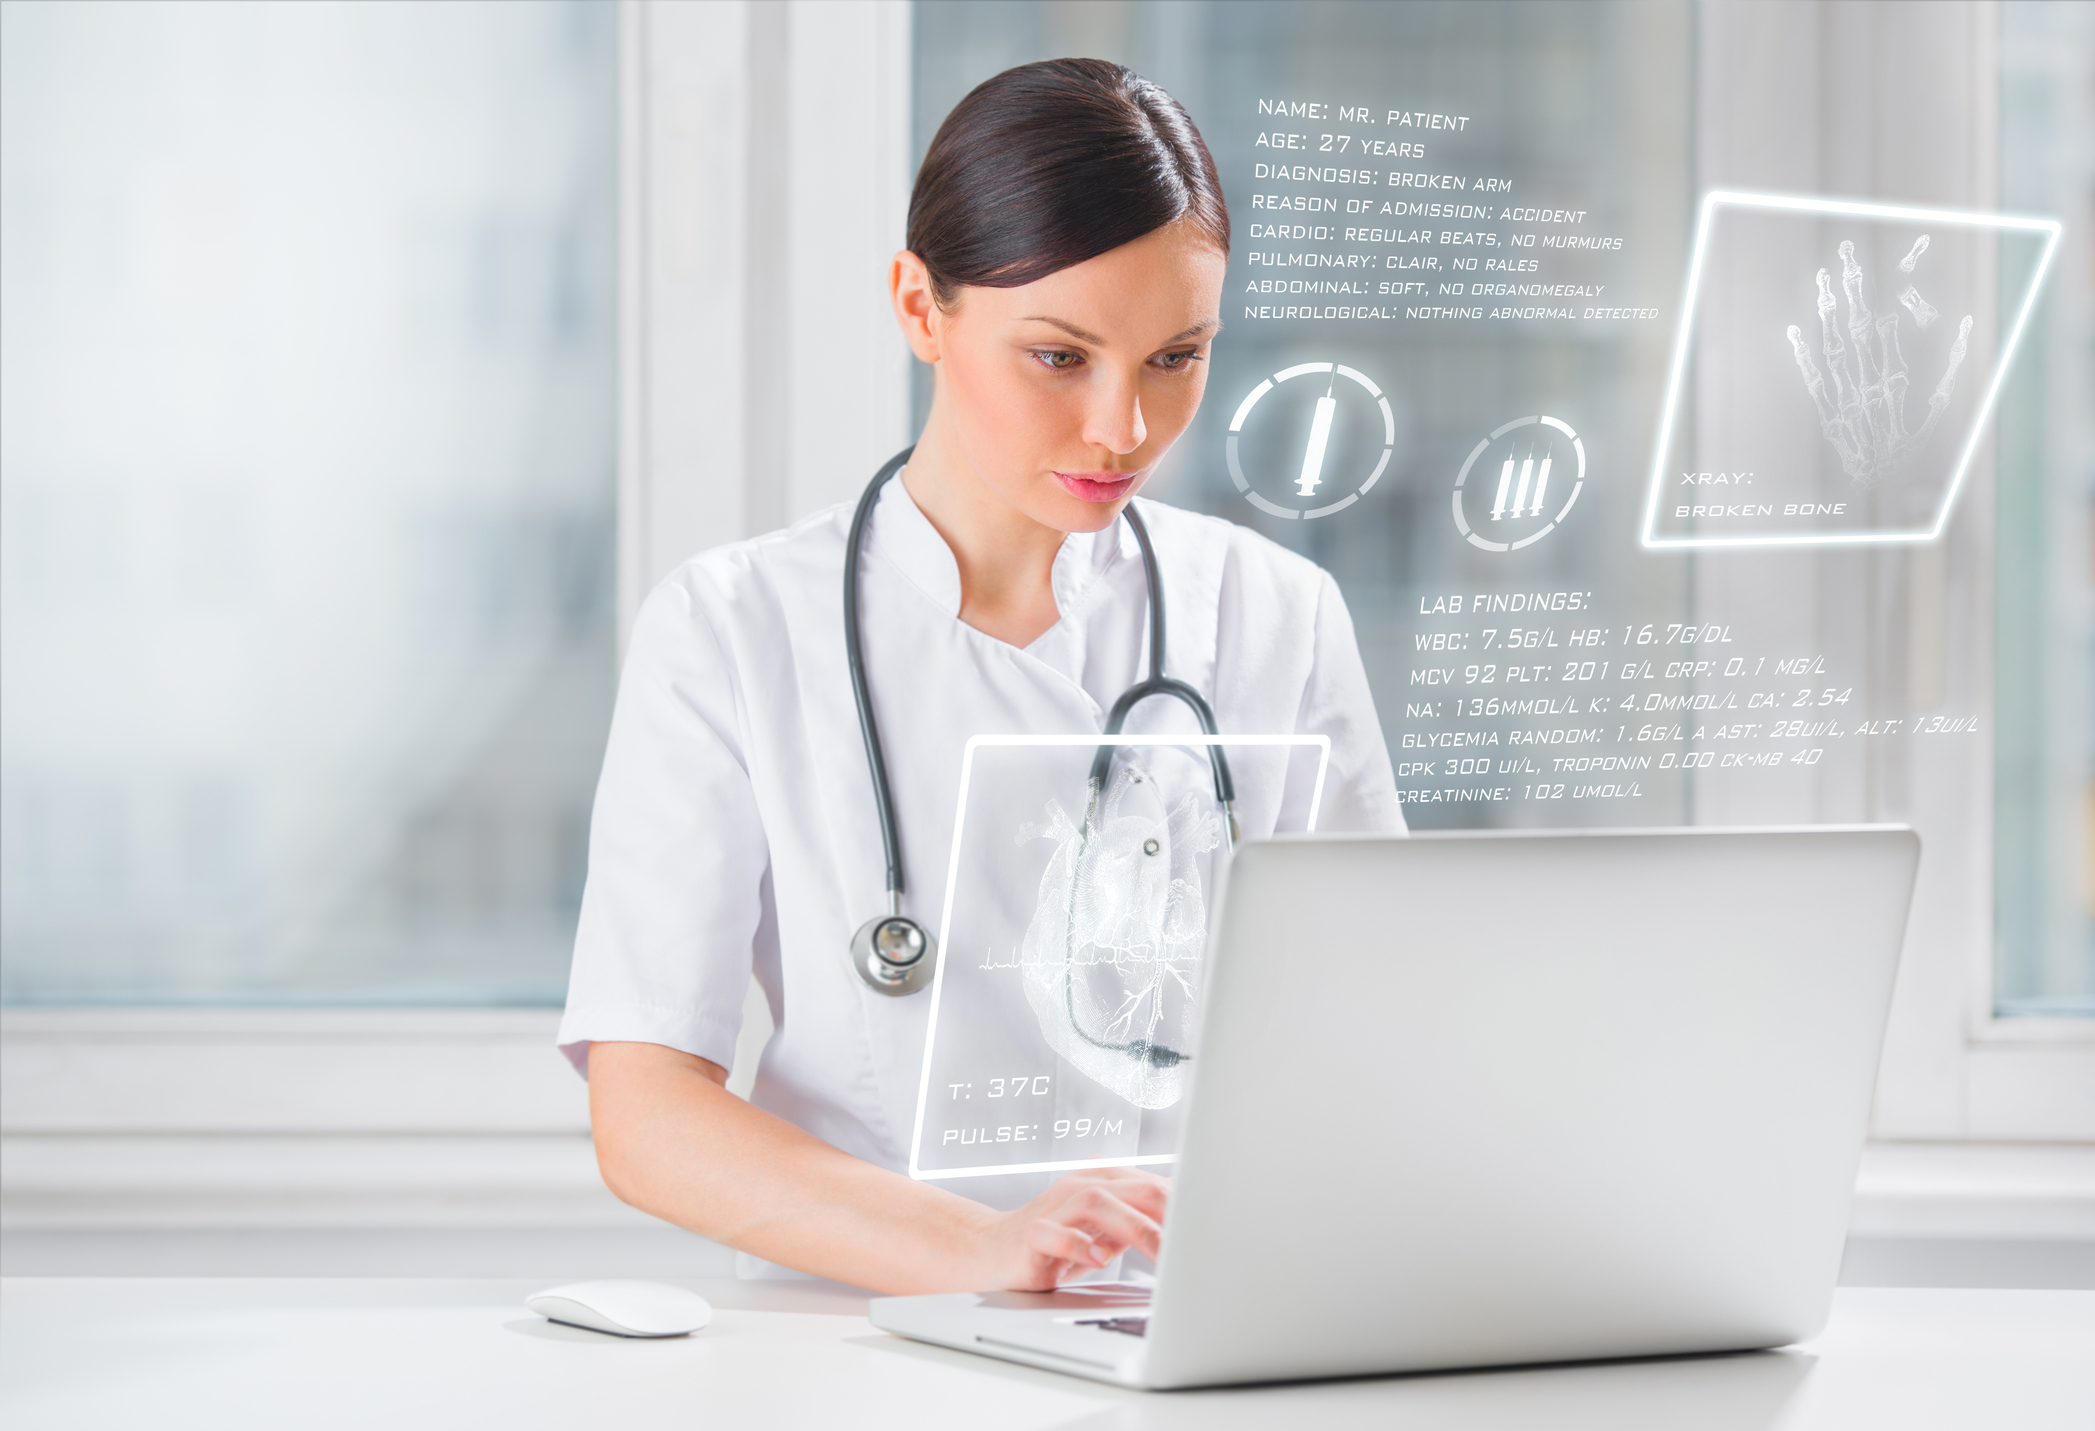 AI Curriculum for Clinicians™ - Clinicians are the key to driving healthcare innovations. Learn the core concepts every clinician-AI leader should know through a curriculum designed by industry experts and clinicians.